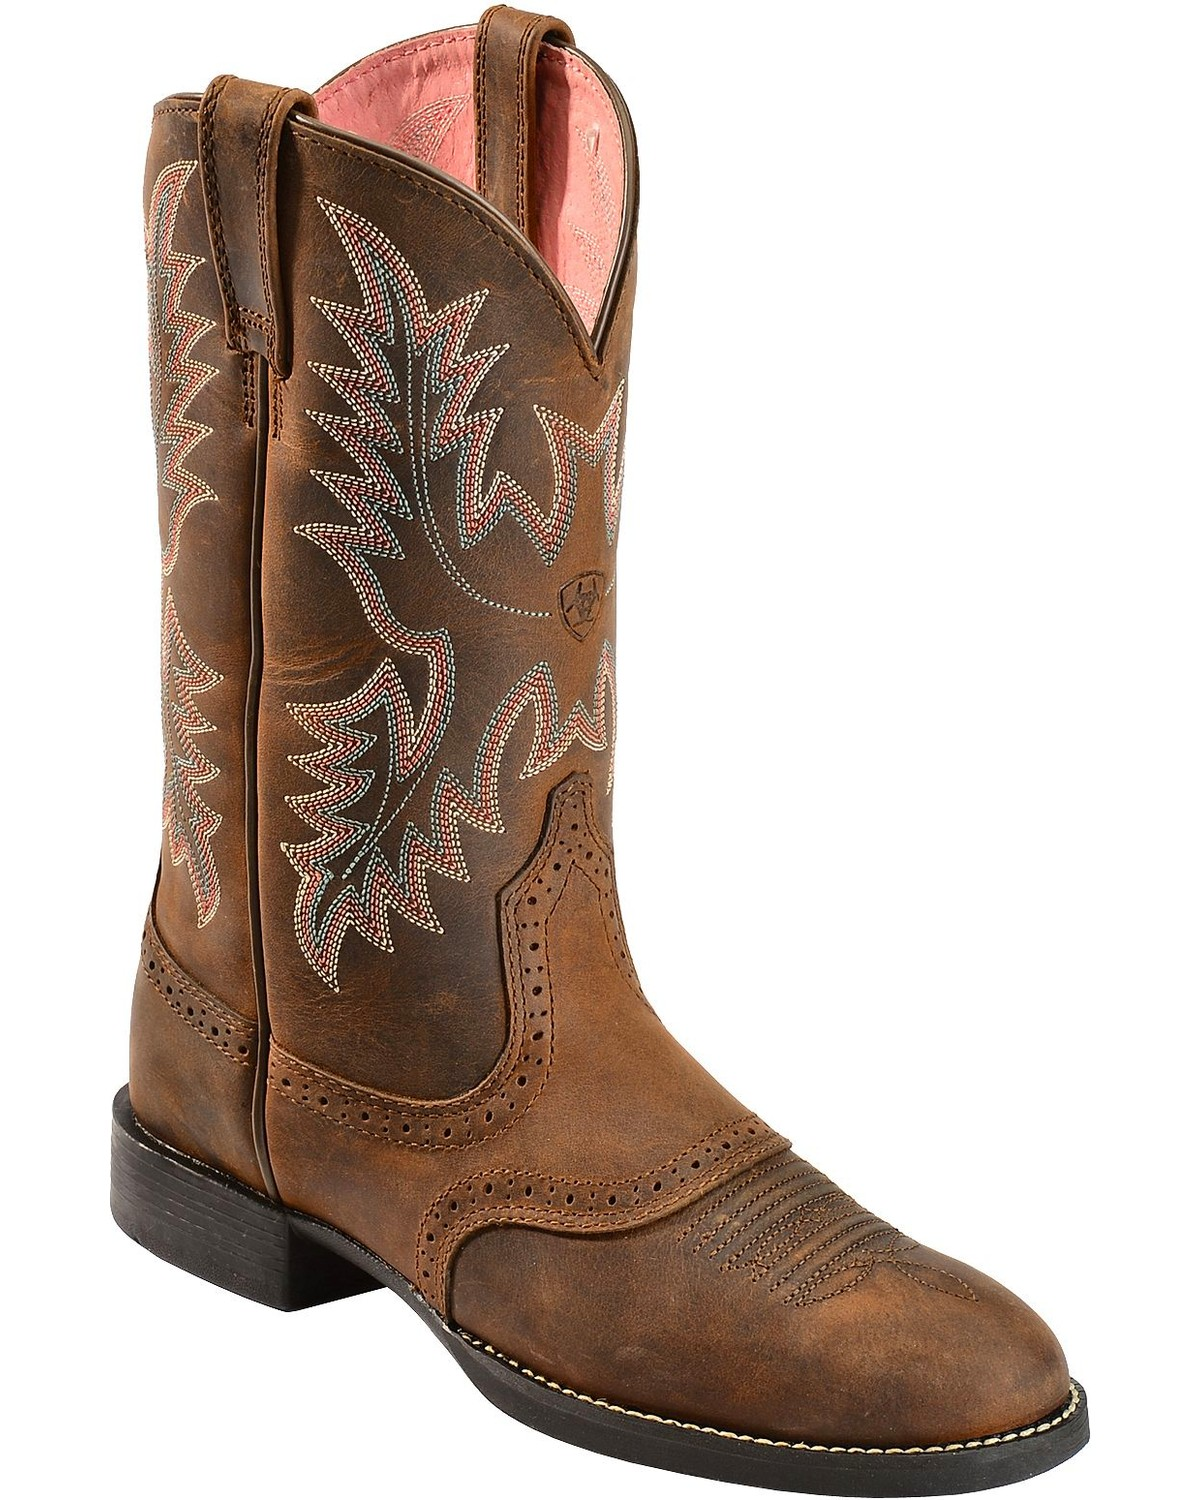 "Ariat Women's Stockman 11"" Western Boots"